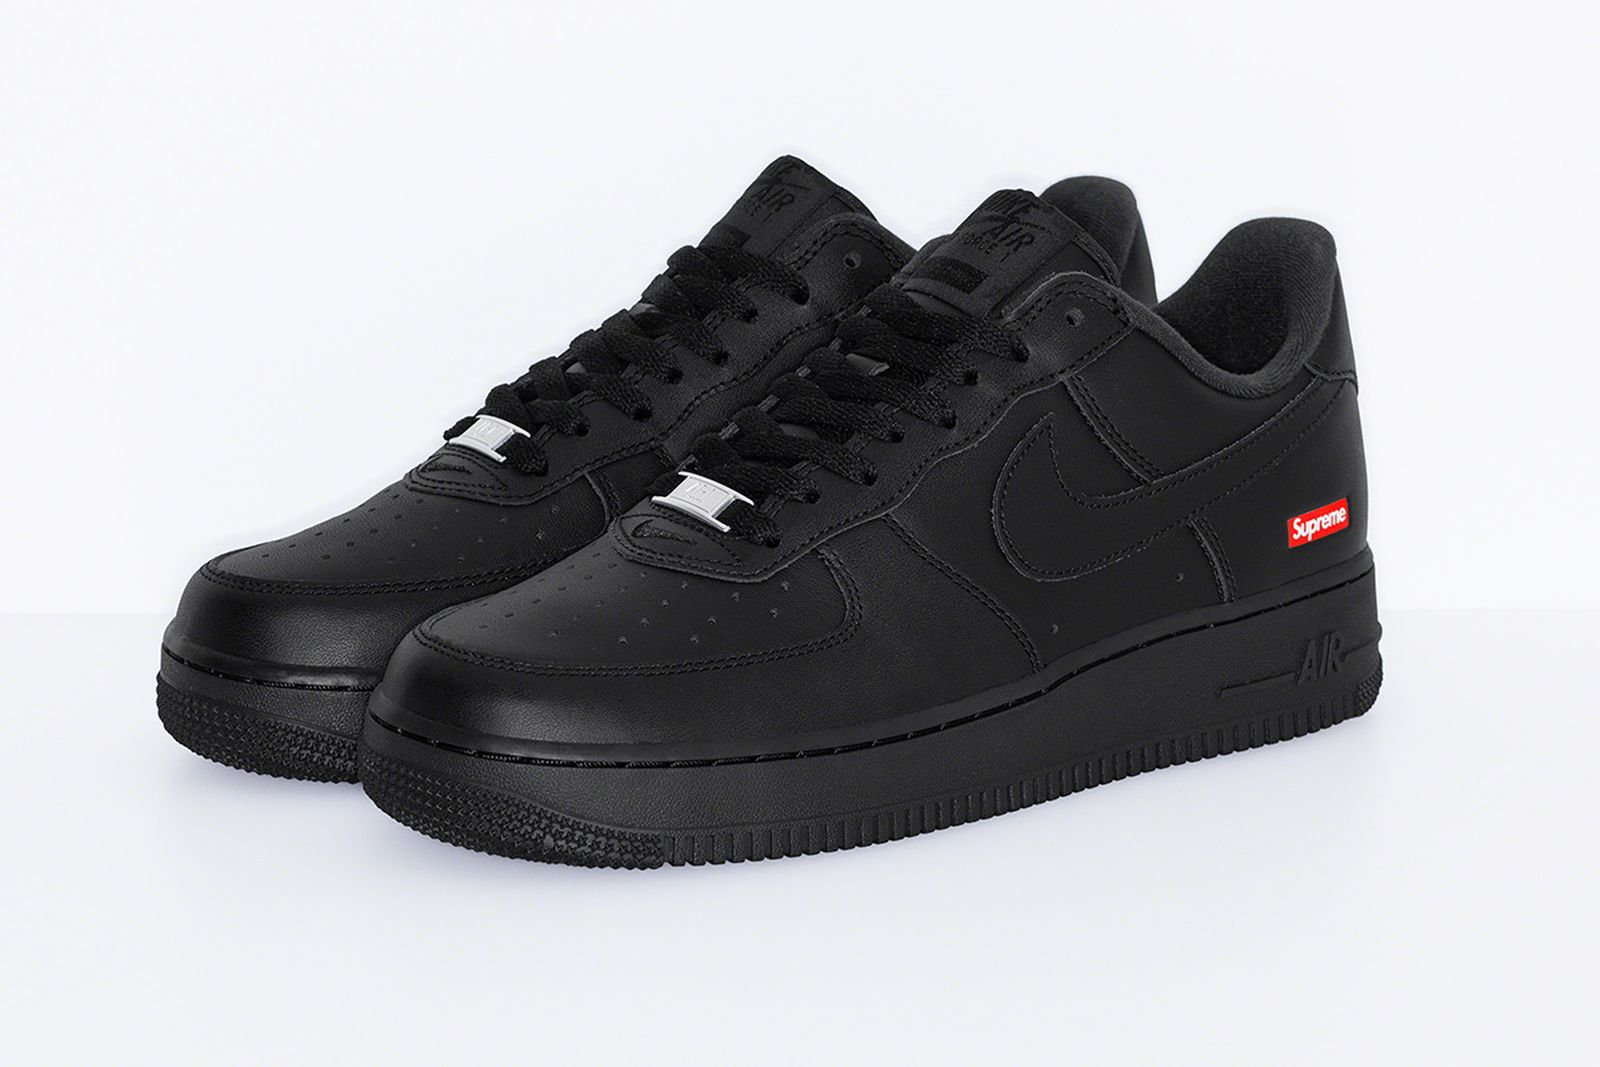 supreme-nike-air-force-1-low-2020-release-date-price-01